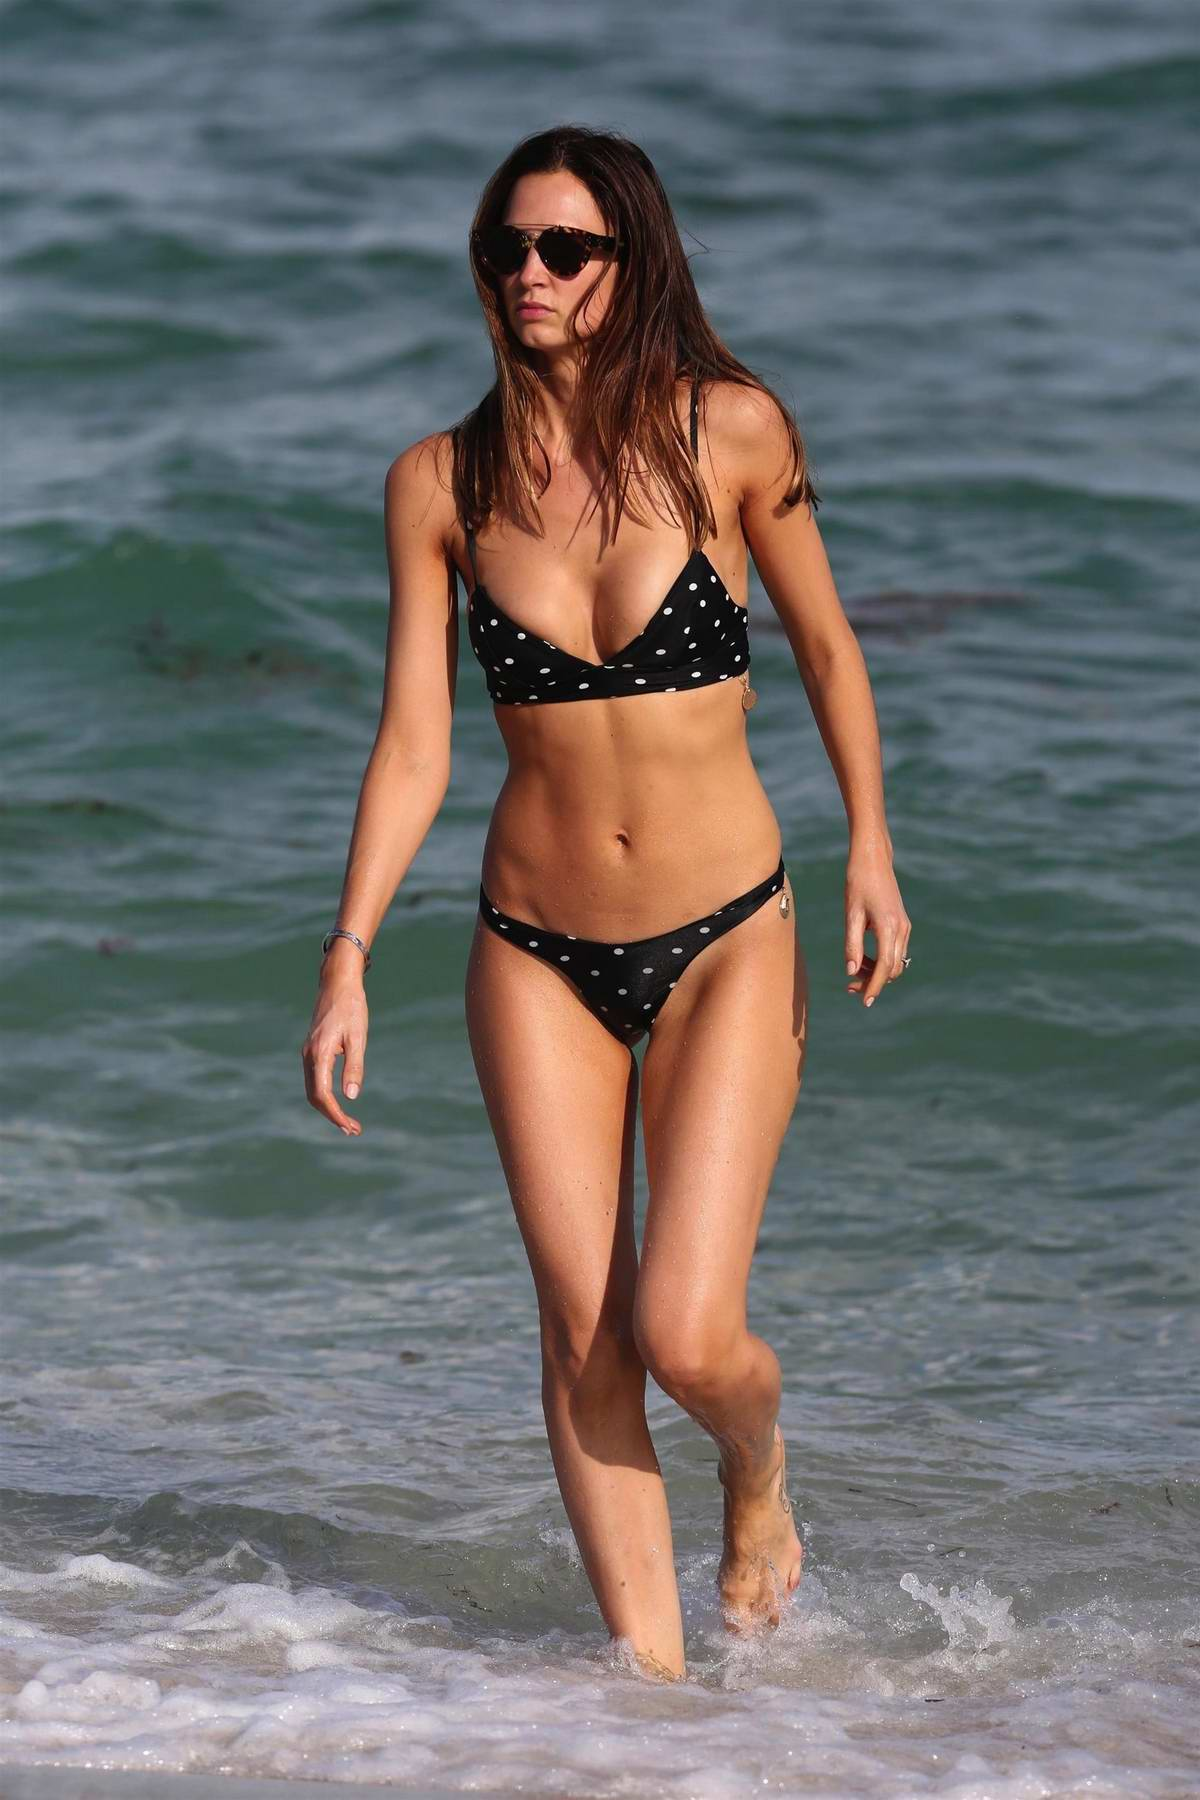 Alice Amelie in a black polka dotted bikini enjoys the beach in Miami, Florida